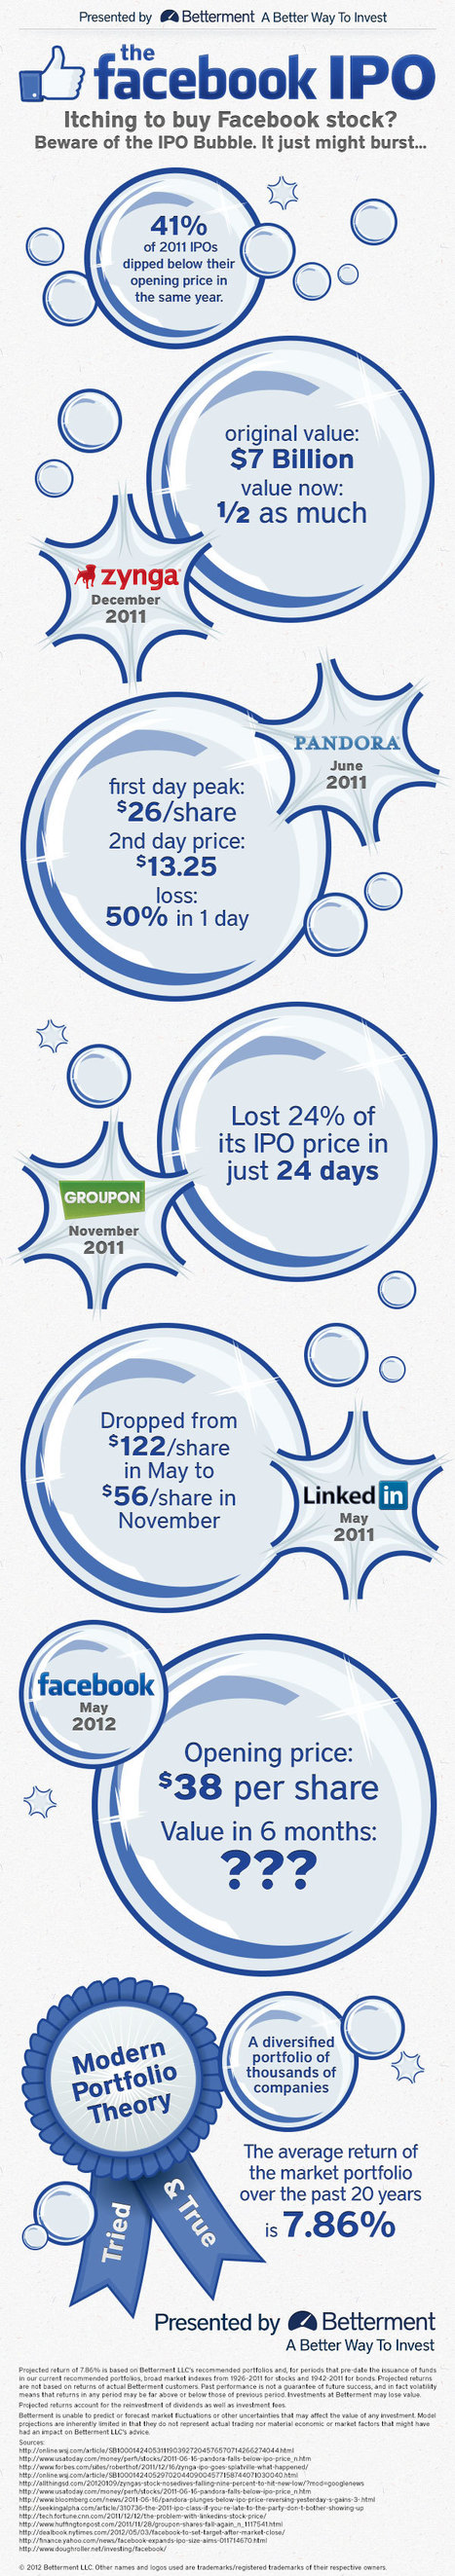 Facebook IPO - Looking to Buy Facebook Stock? [Infographic] | Free Download Buzz | All Infographics | Scoop.it